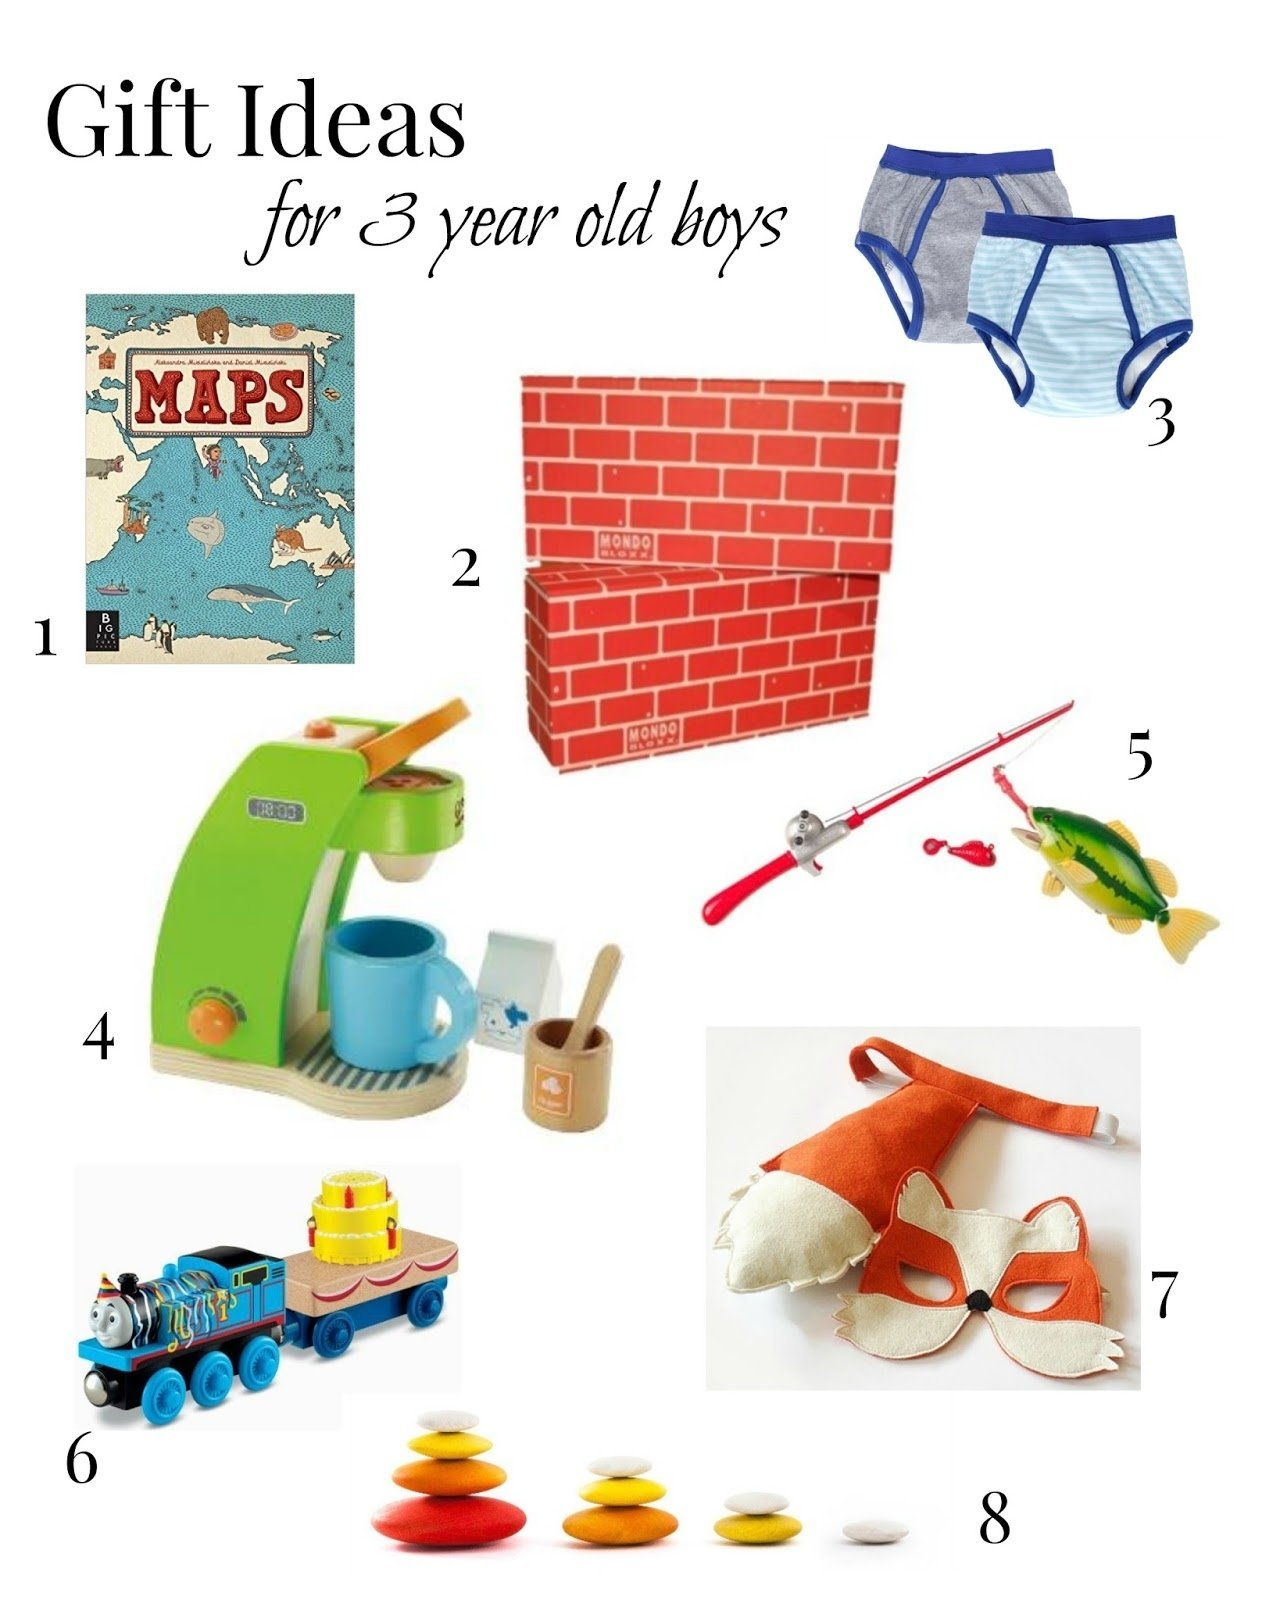 10 Famous Birthday Gift Ideas For 3 Year Old Boy